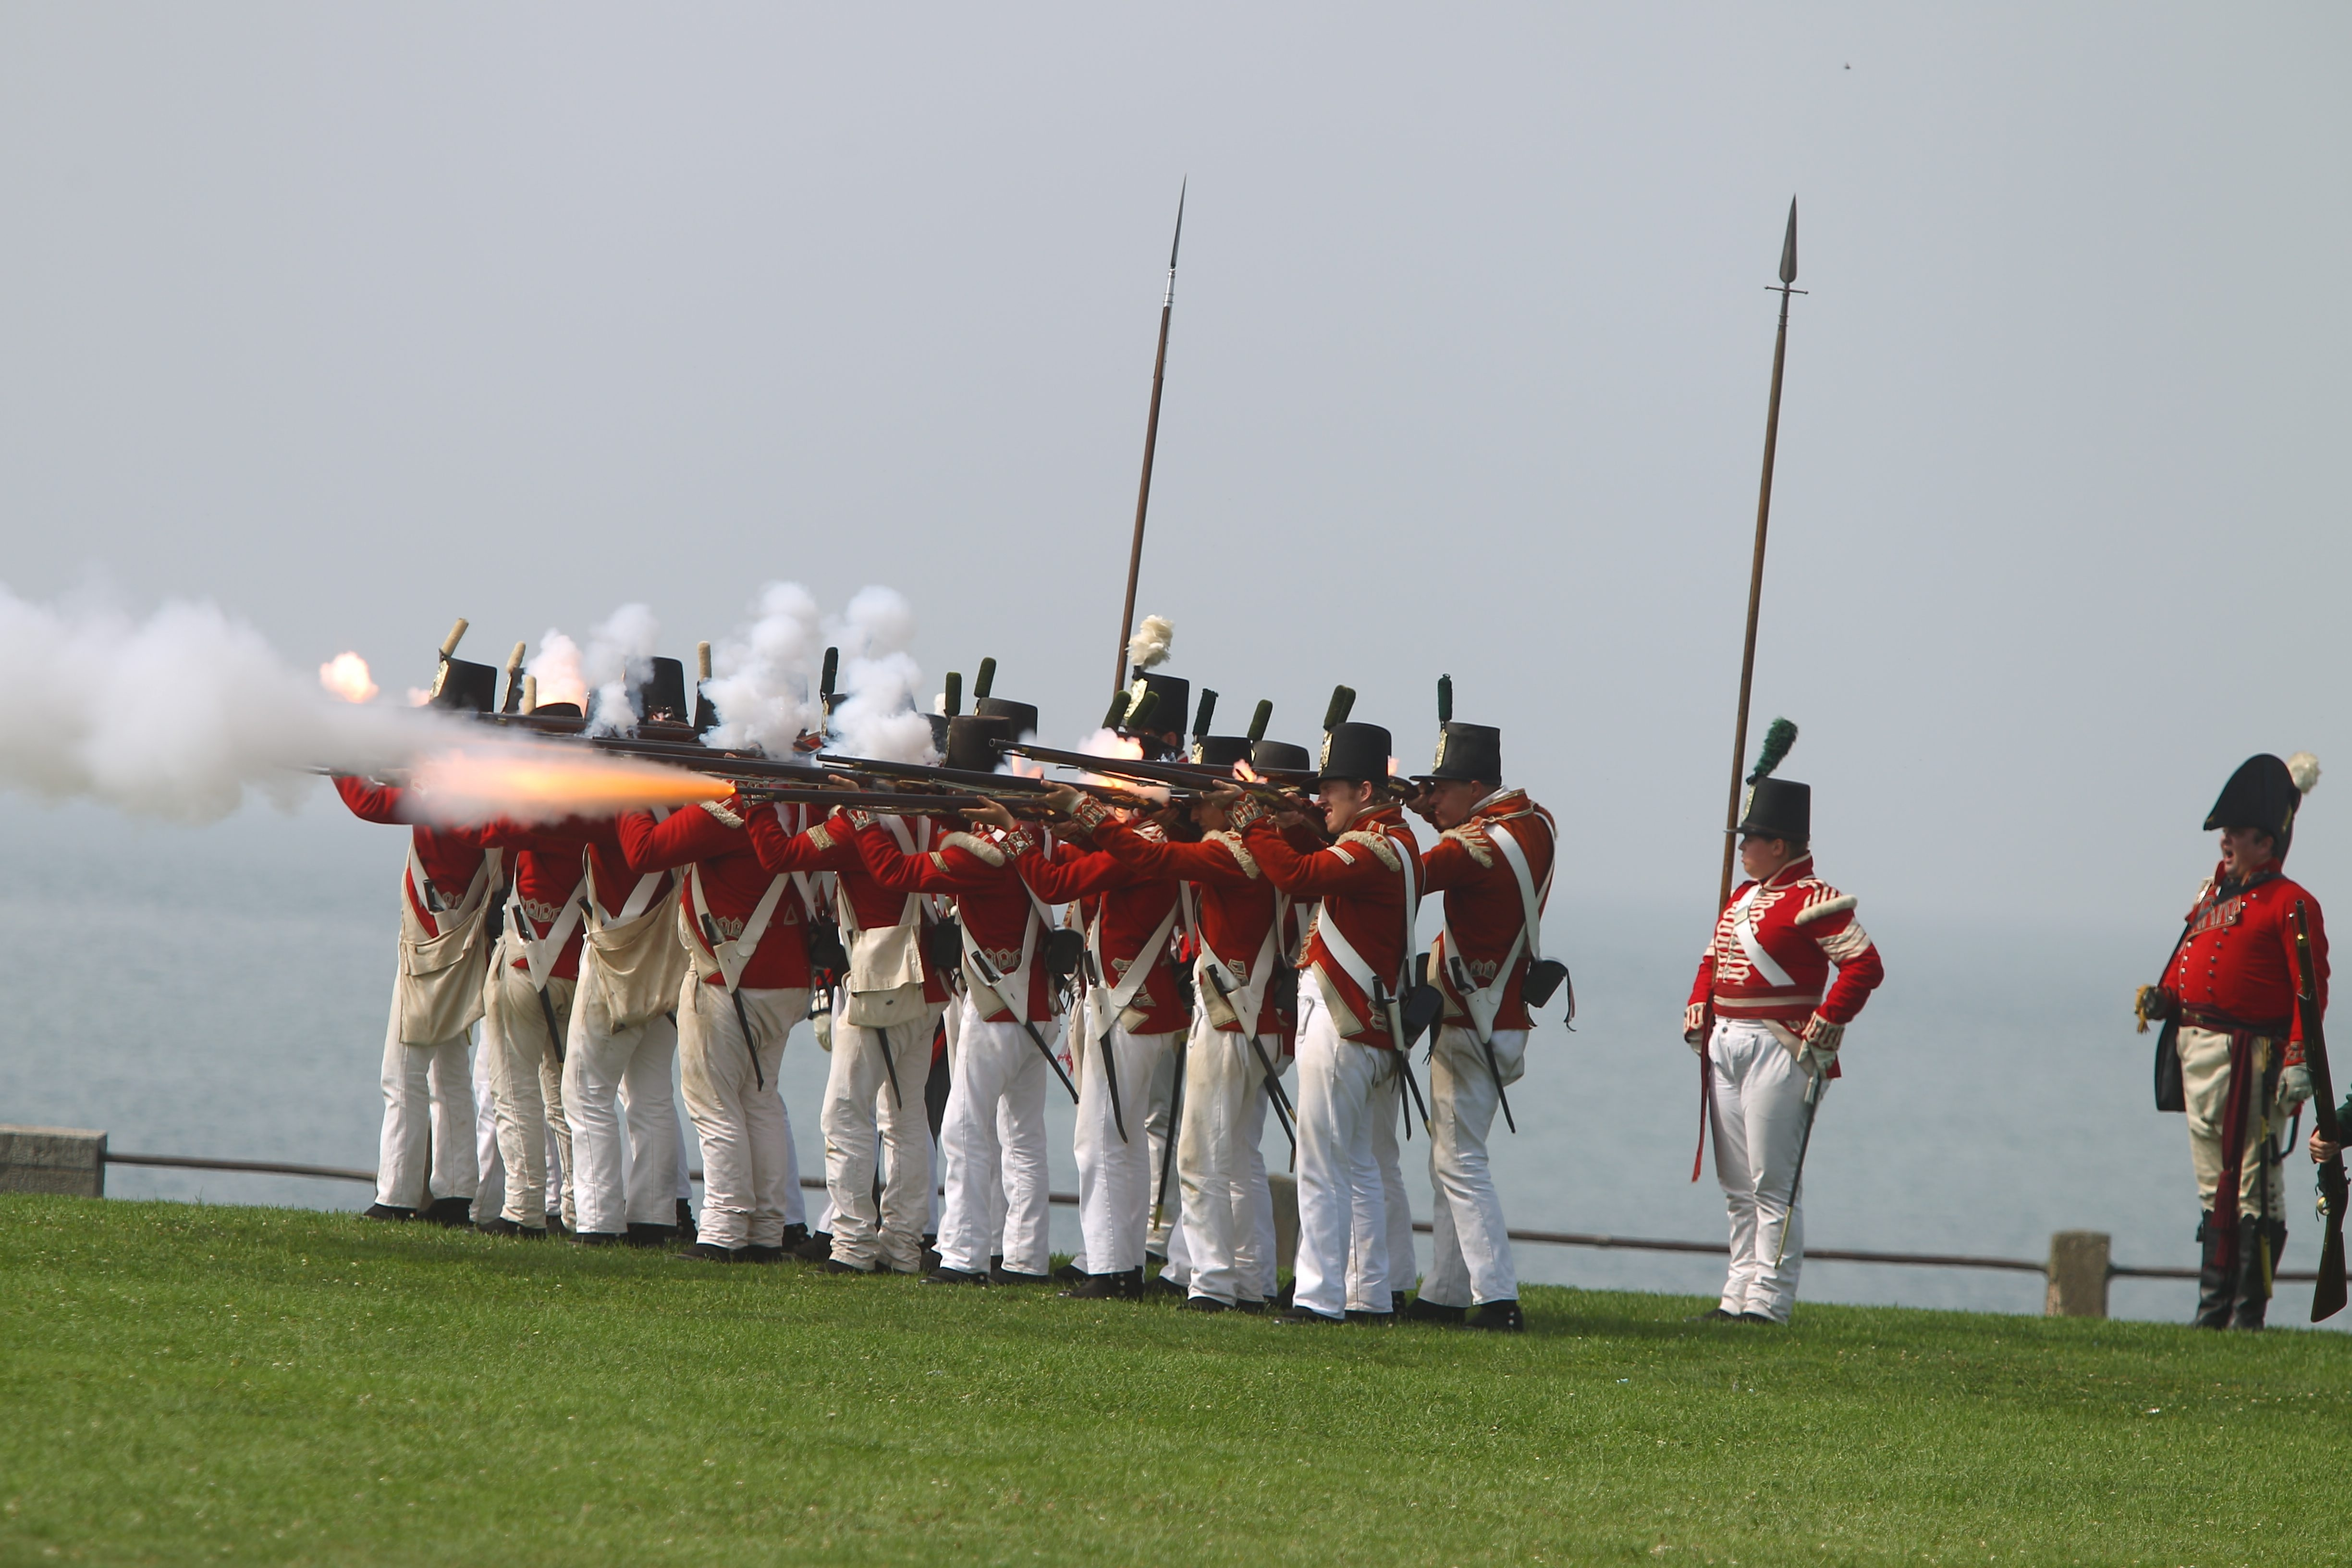 Patriots Weekend at Old Fort Niagara will give young people an opportunity to experience reenactments and fight a mock battle, as Redcoats or American militia.